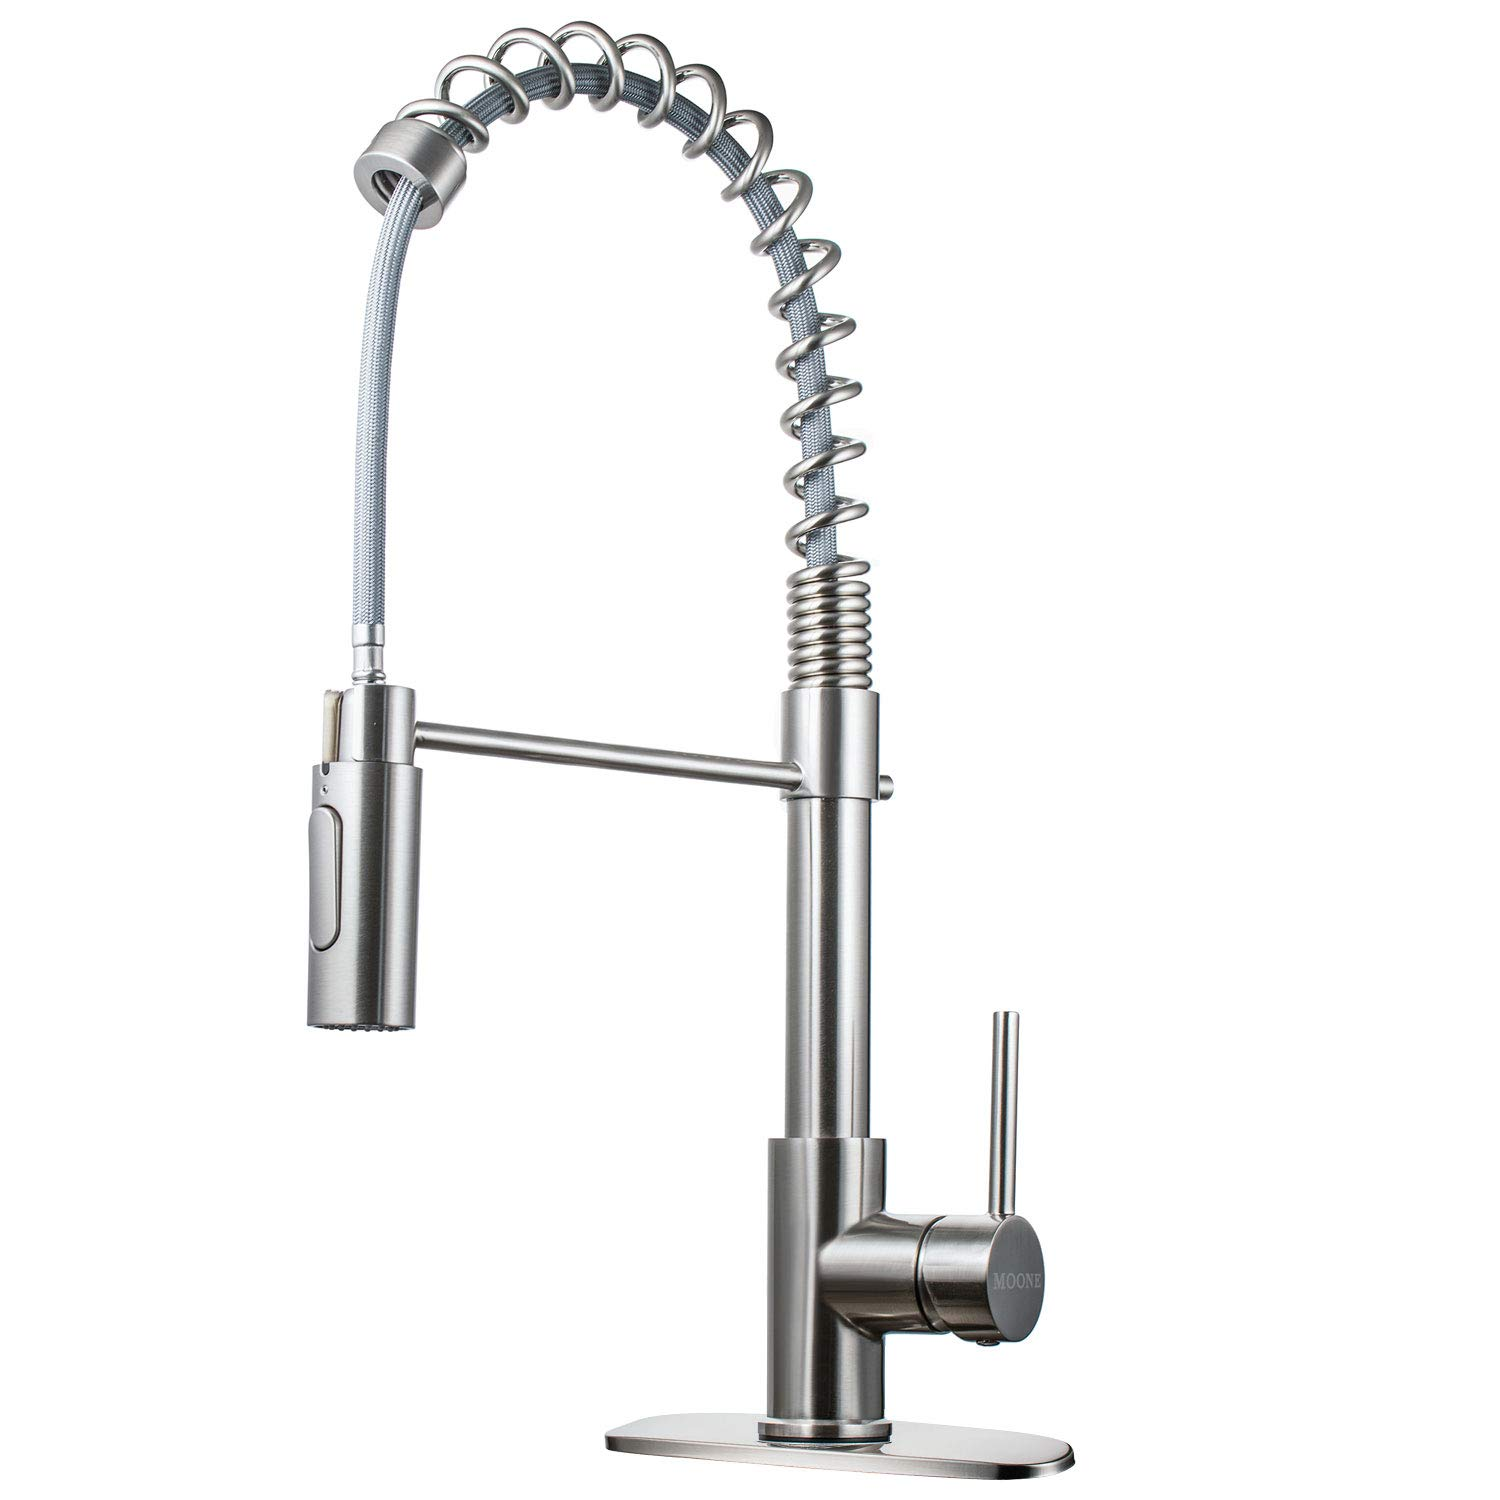 Moone Commercial Spring Kitchen Faucet Single Handle Pull Down Sprayer Brass Body Pull Out Spray Head Sink Faucets Stainless Steel Brushed Nickel with Deck Plate, IAPMO & cUPC Certification